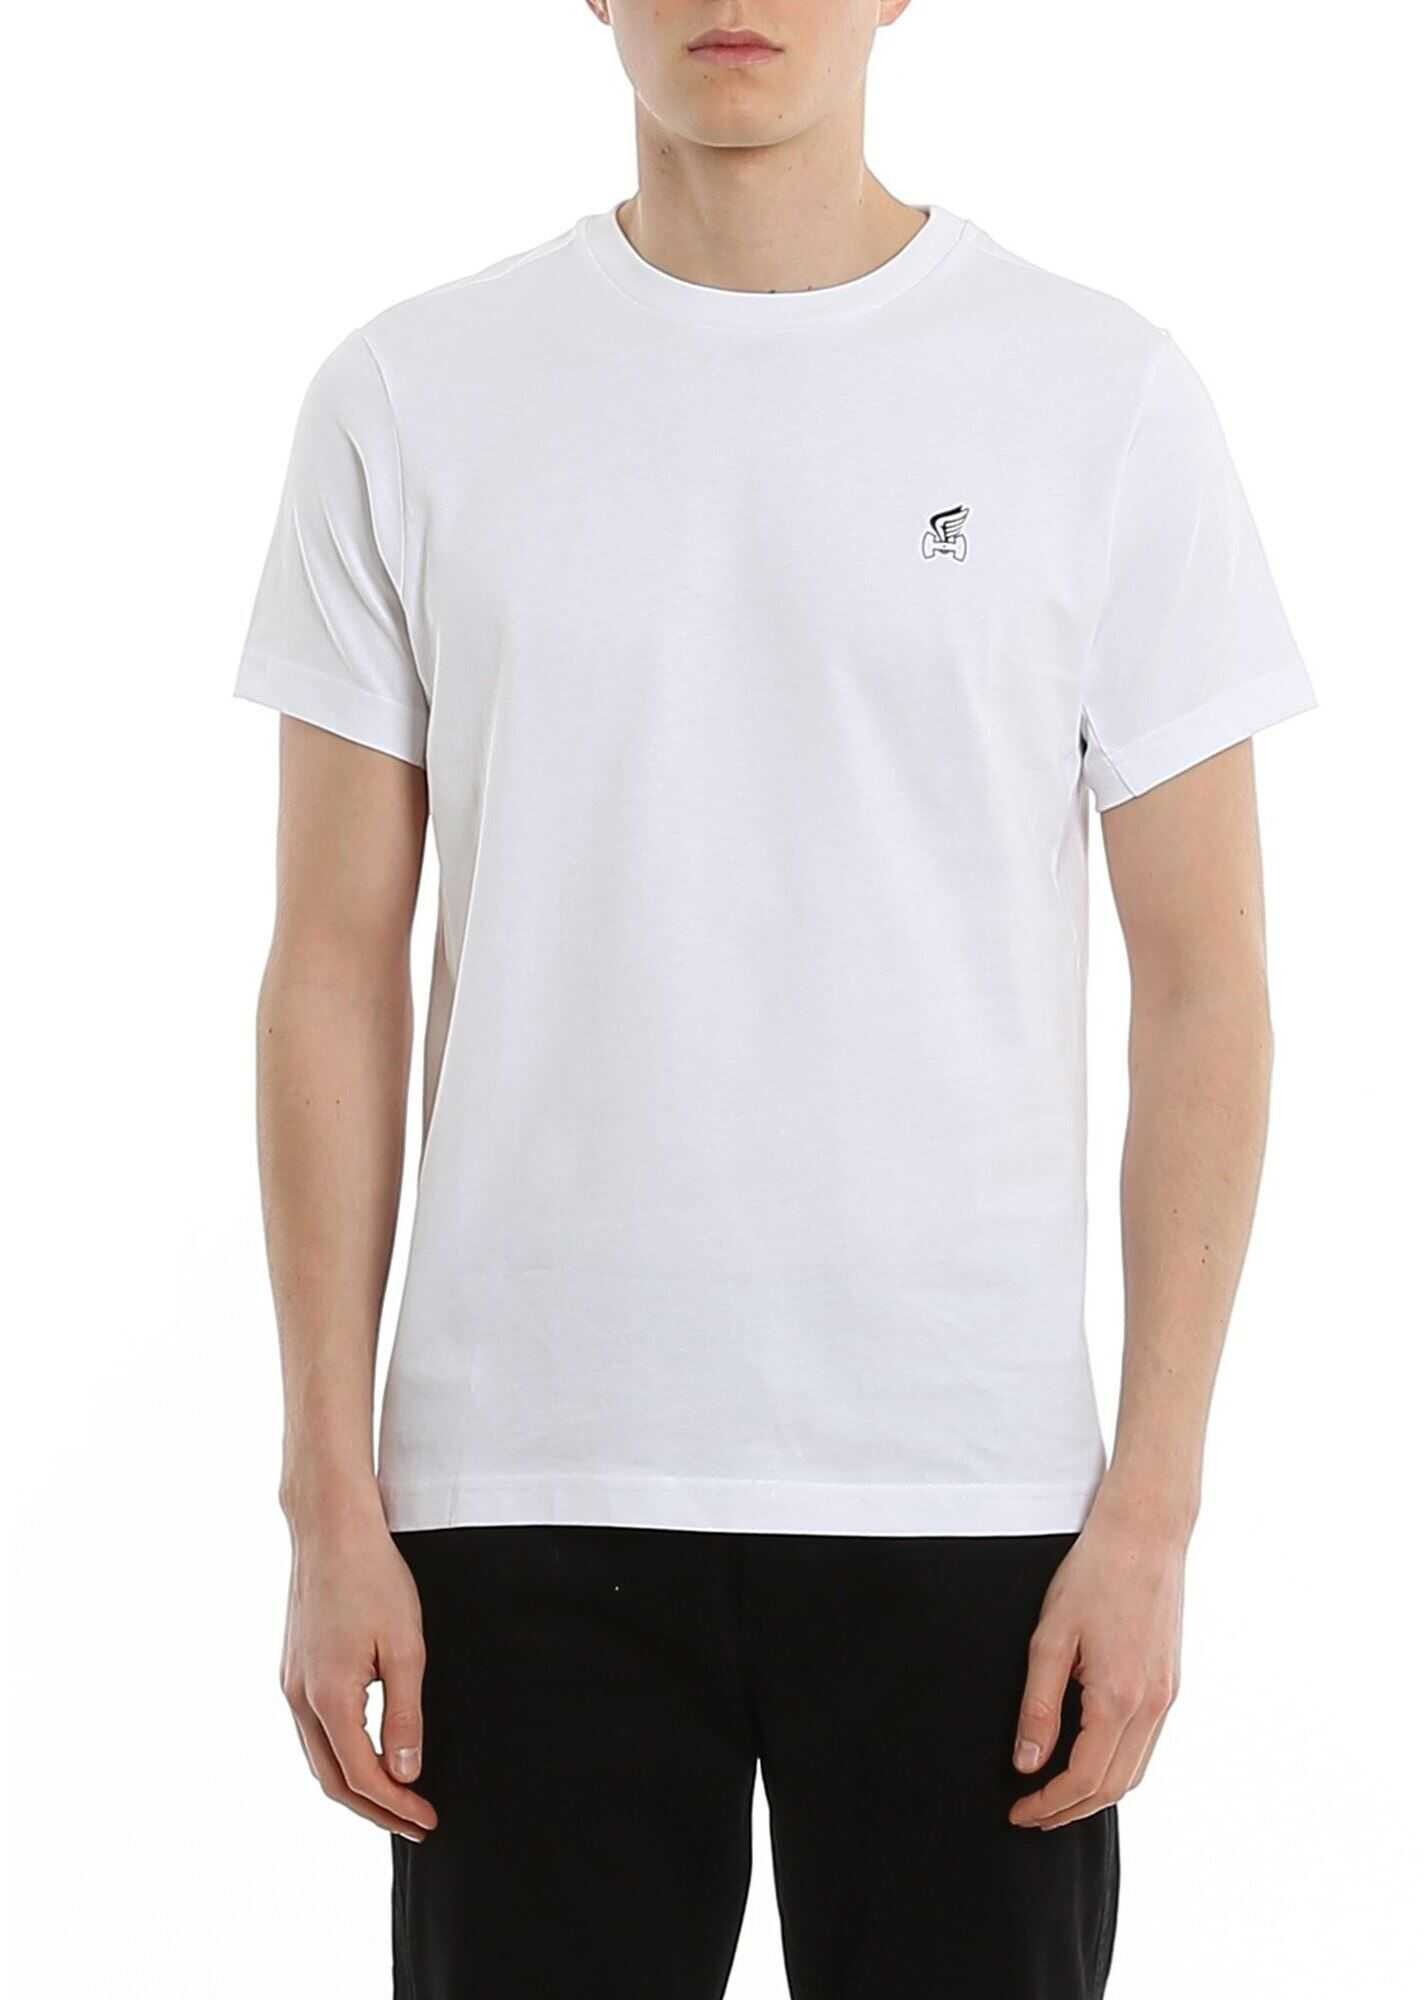 Hogan Logo Print Regular Fit Jersey T-Shirt White